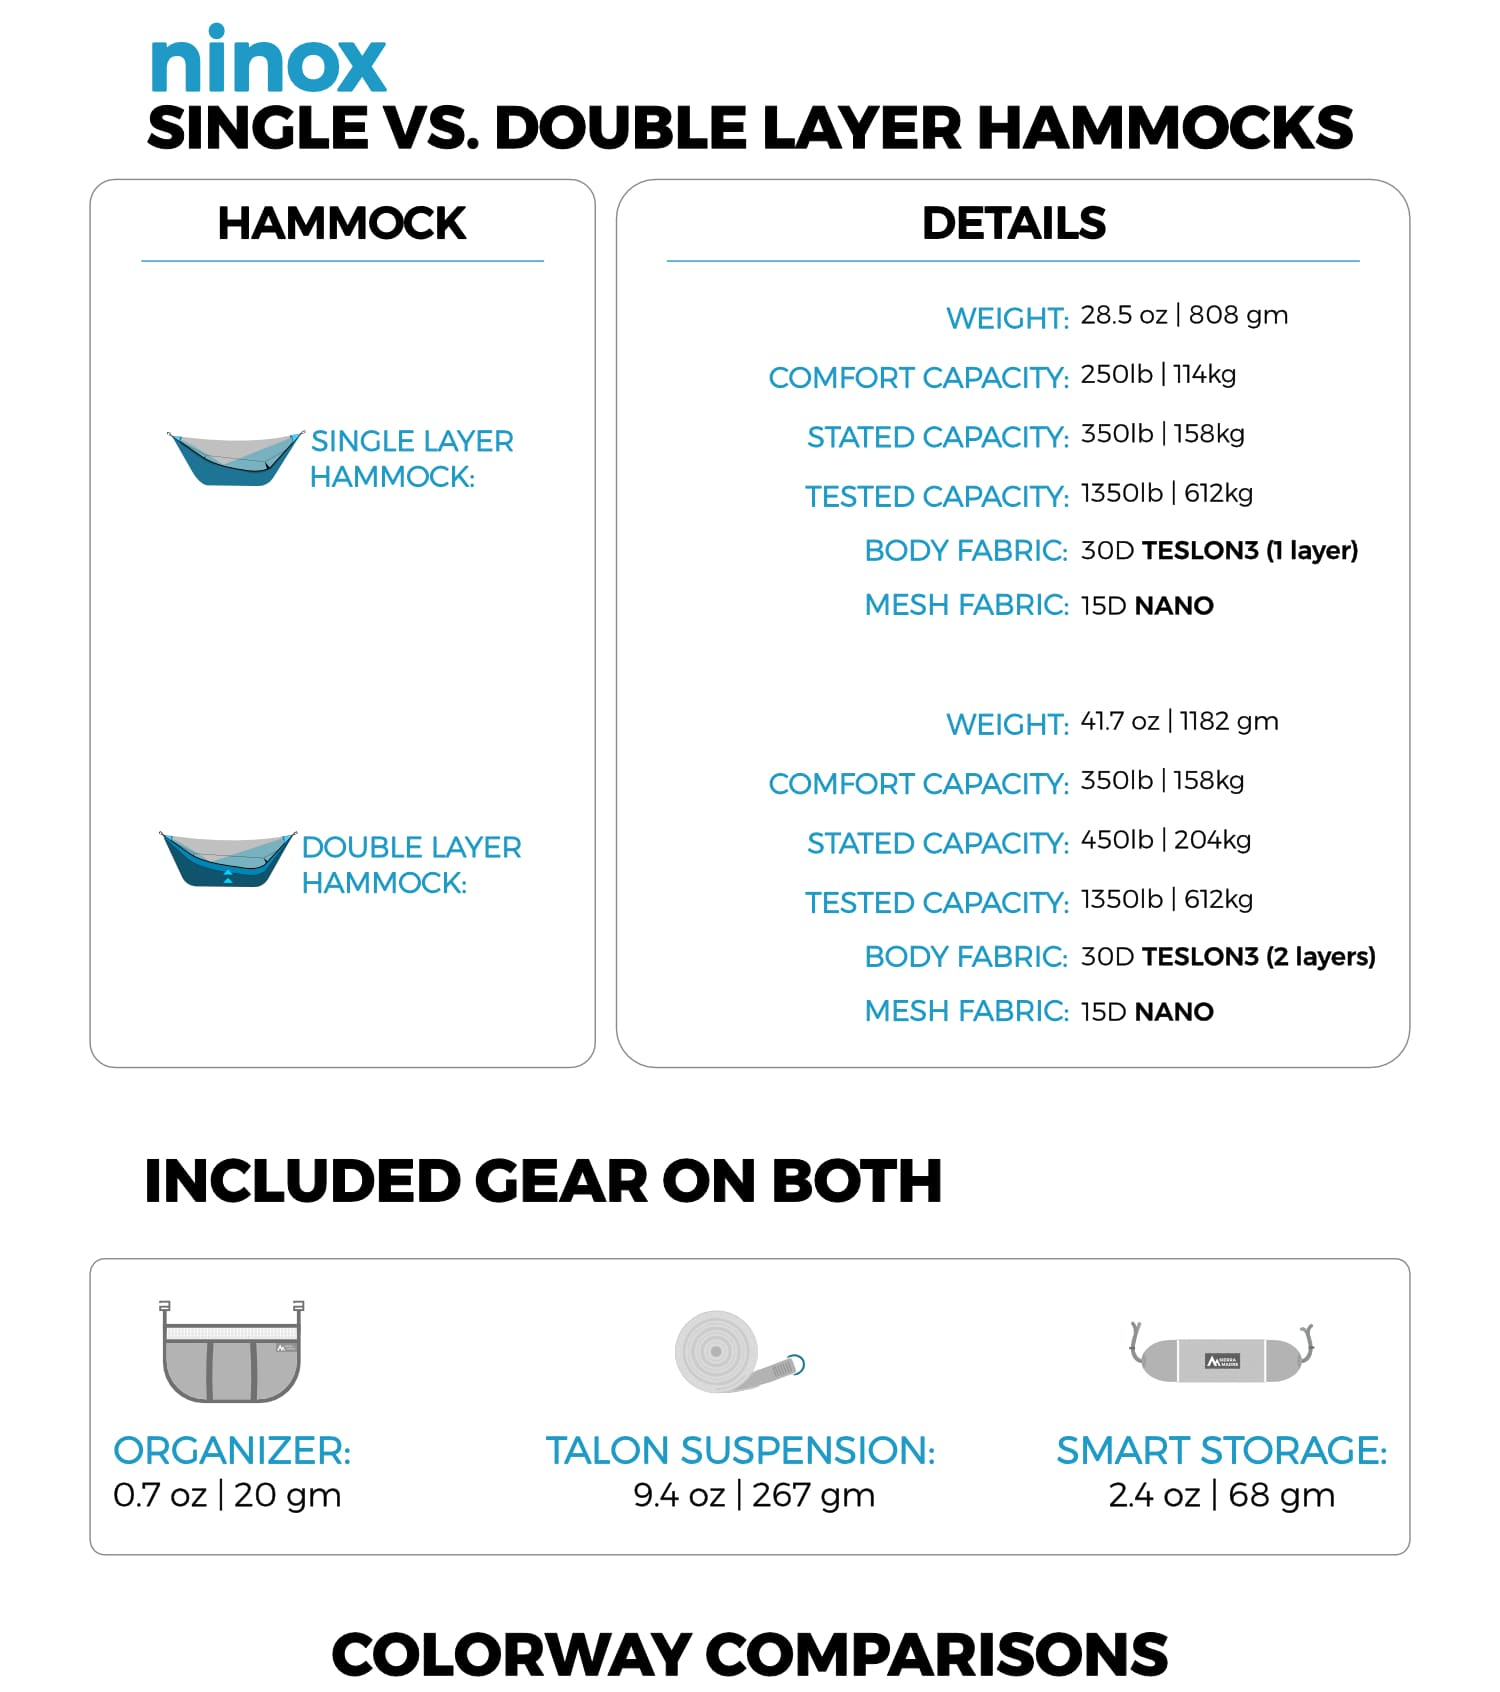 The single vs. double layer ninox hammock comparison gives you the details on how to choose the best camping hammock for you!